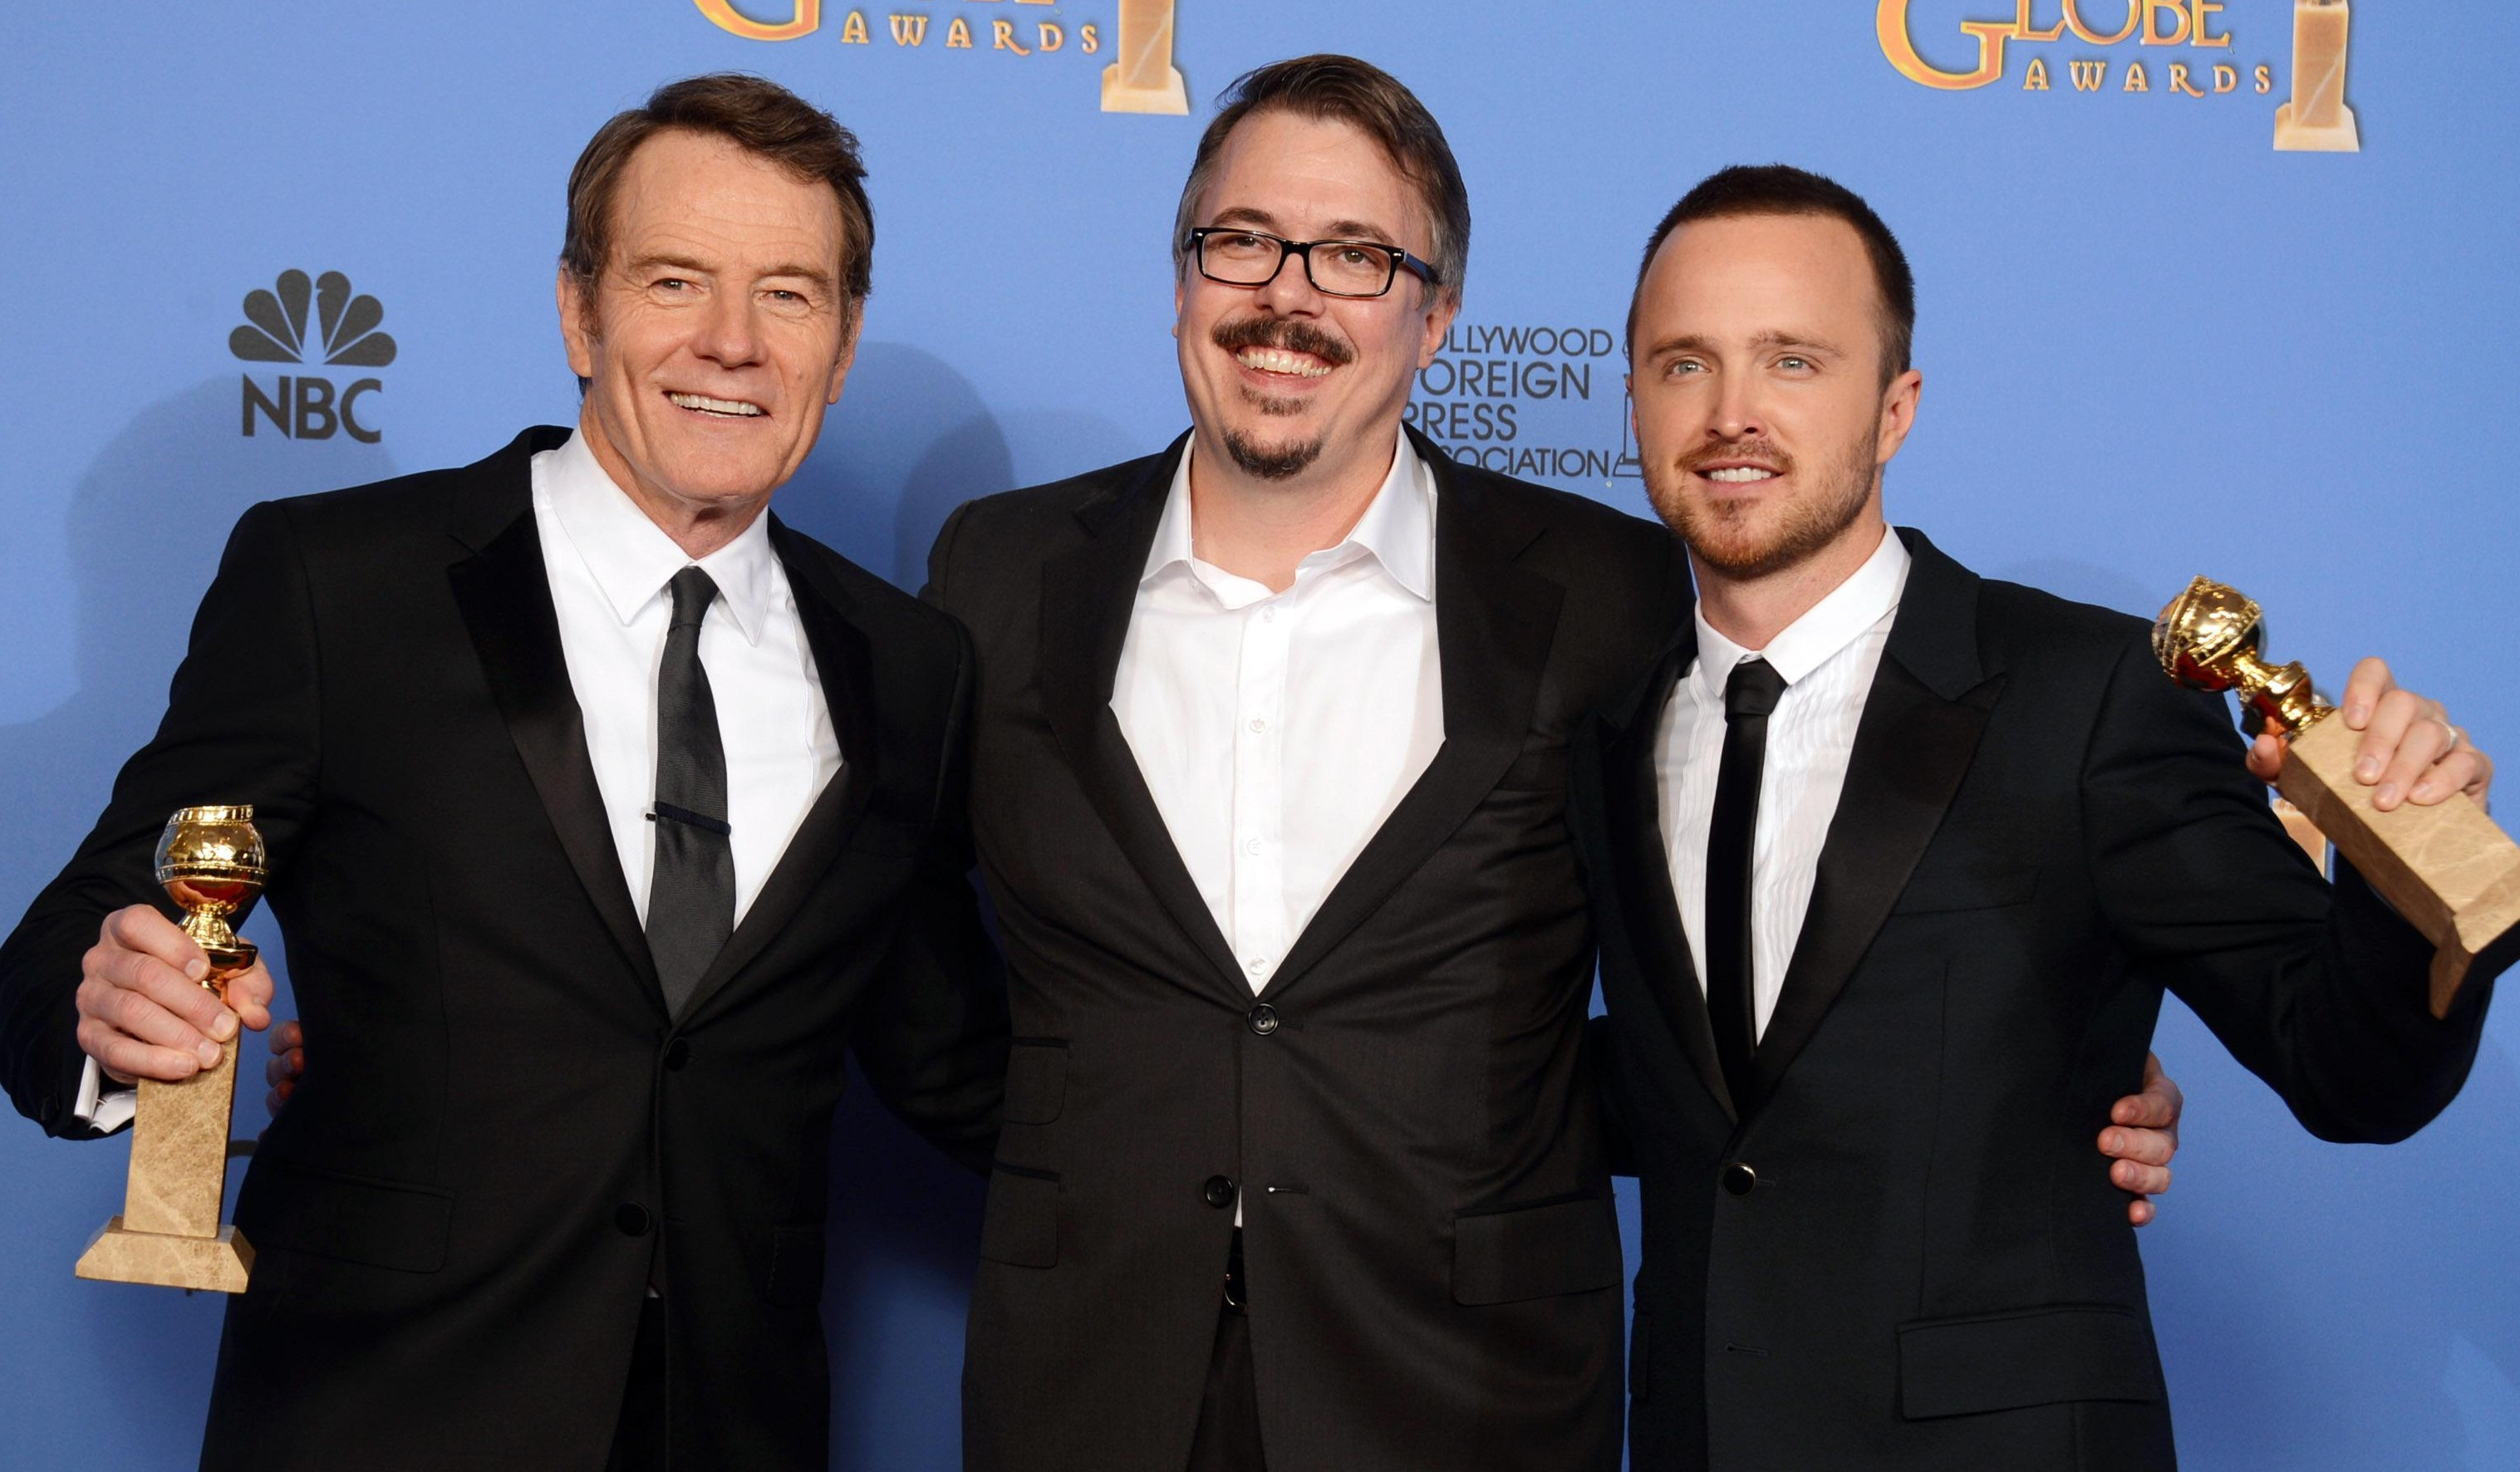 Breaking Bad Globos de Oro 2014